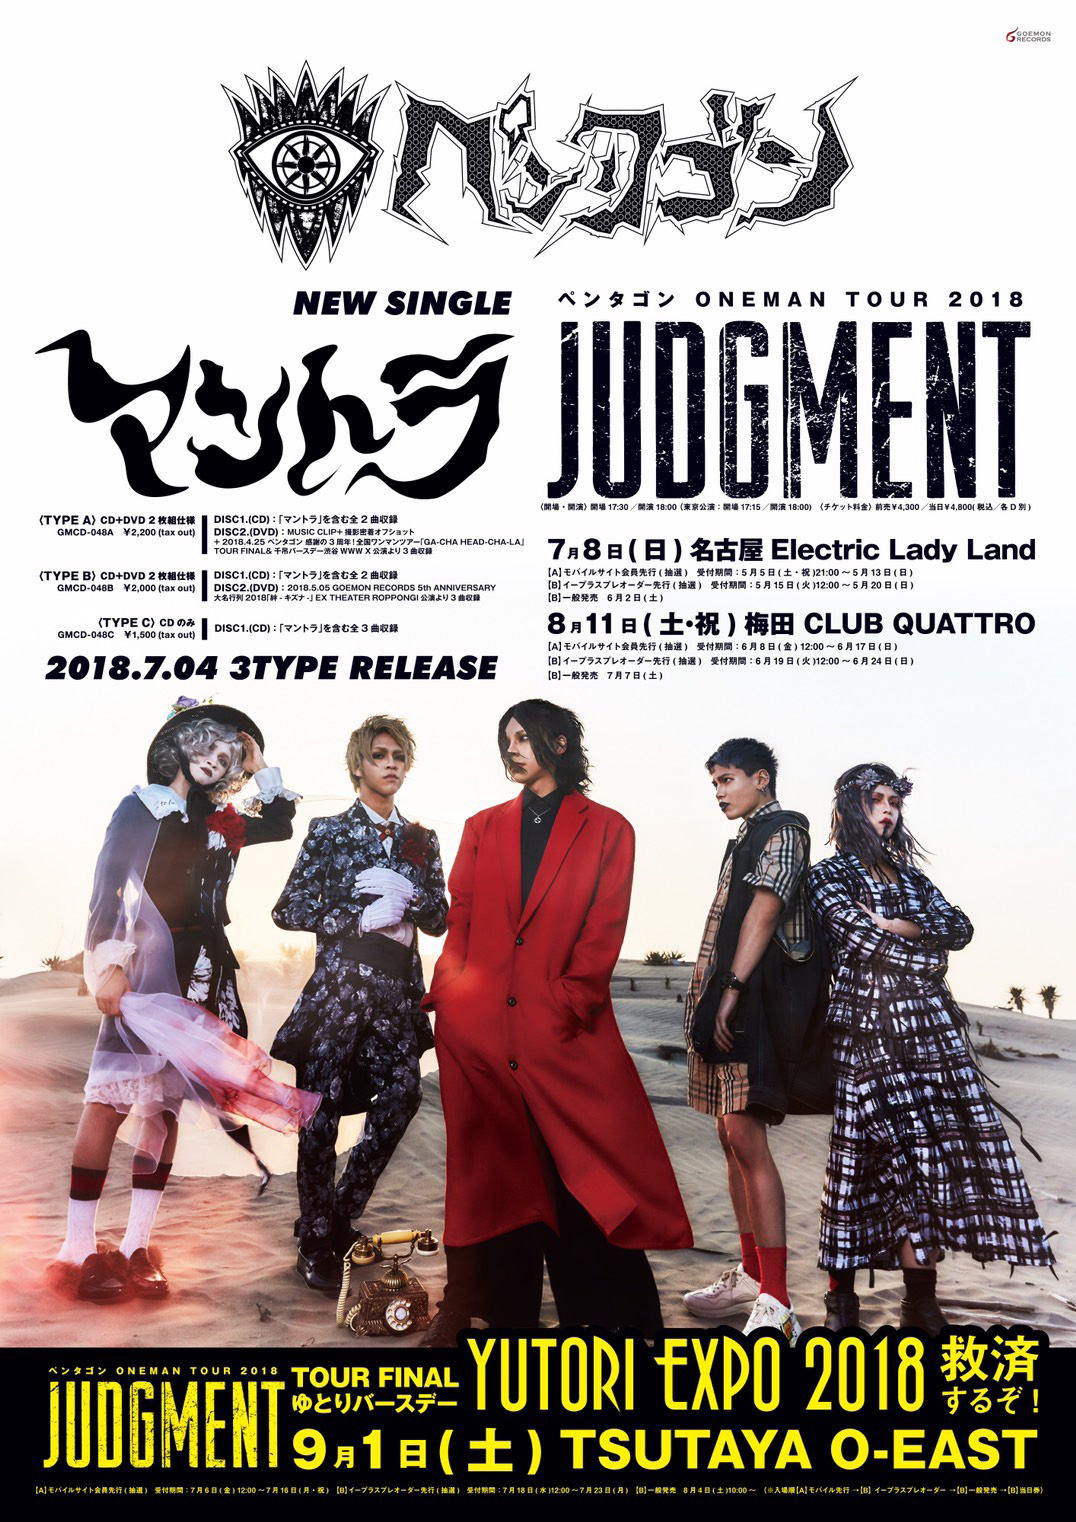 NEW SINGLE「マントラ」/ONEMAN TOUR 2018「JUDGMENT」/9月1日「YUTORI EXPO 2018 救済するぞ!」 TSUTAYA O-EAST